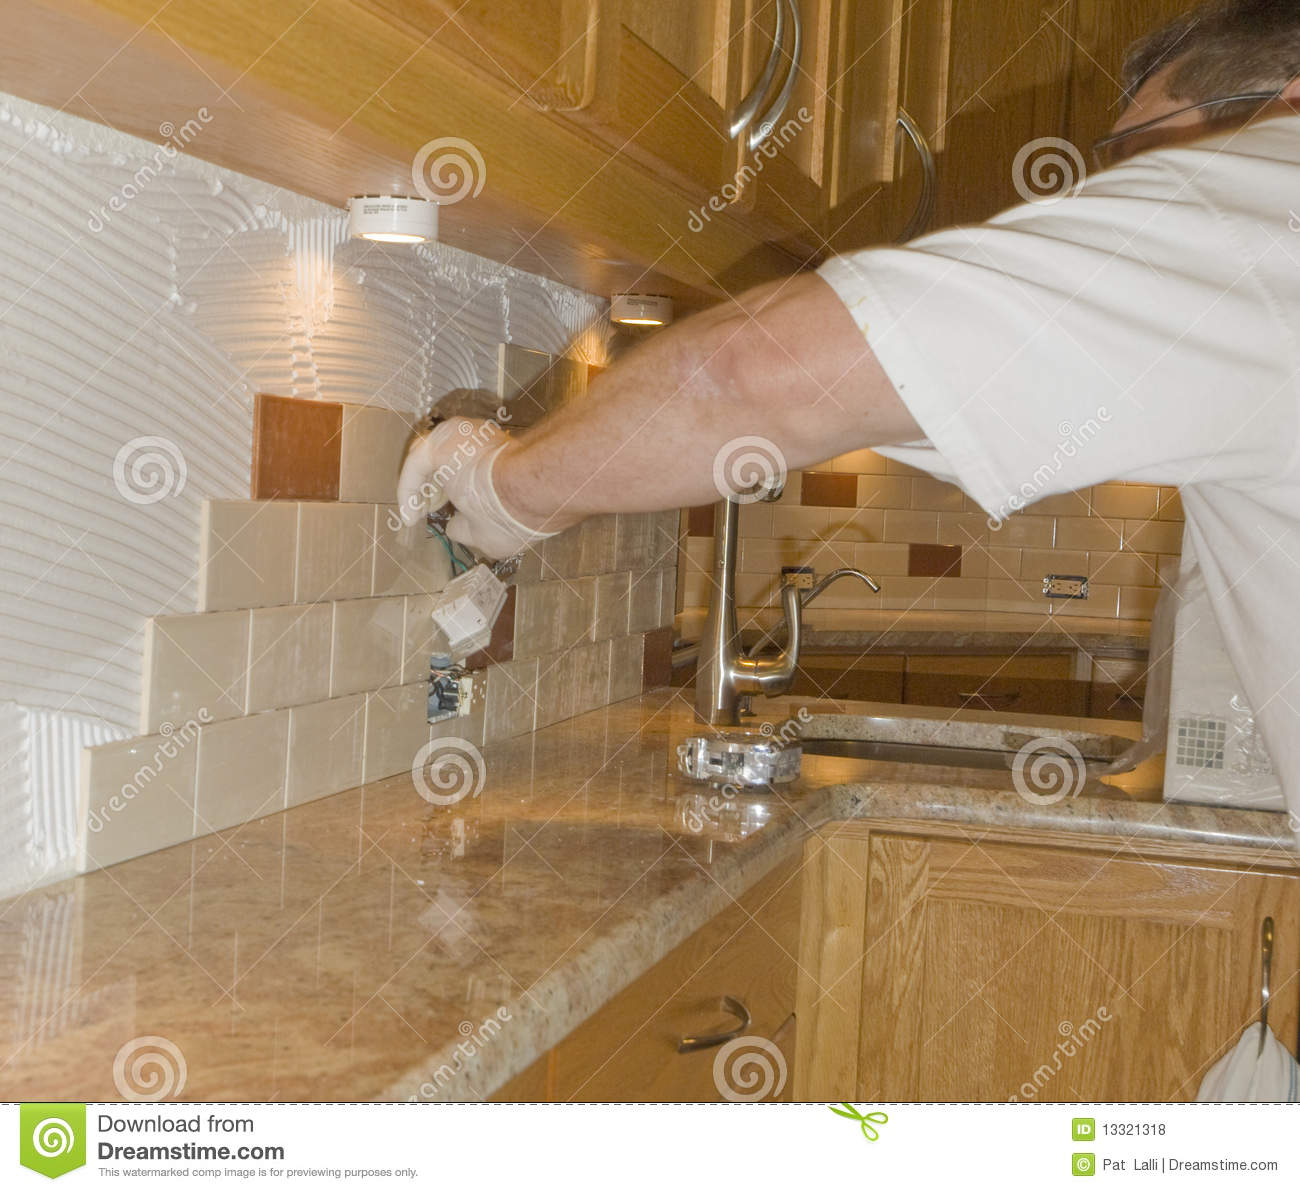 homeskills ceramic tile install ceramic tile floors turn power kitchen remove outlet covers